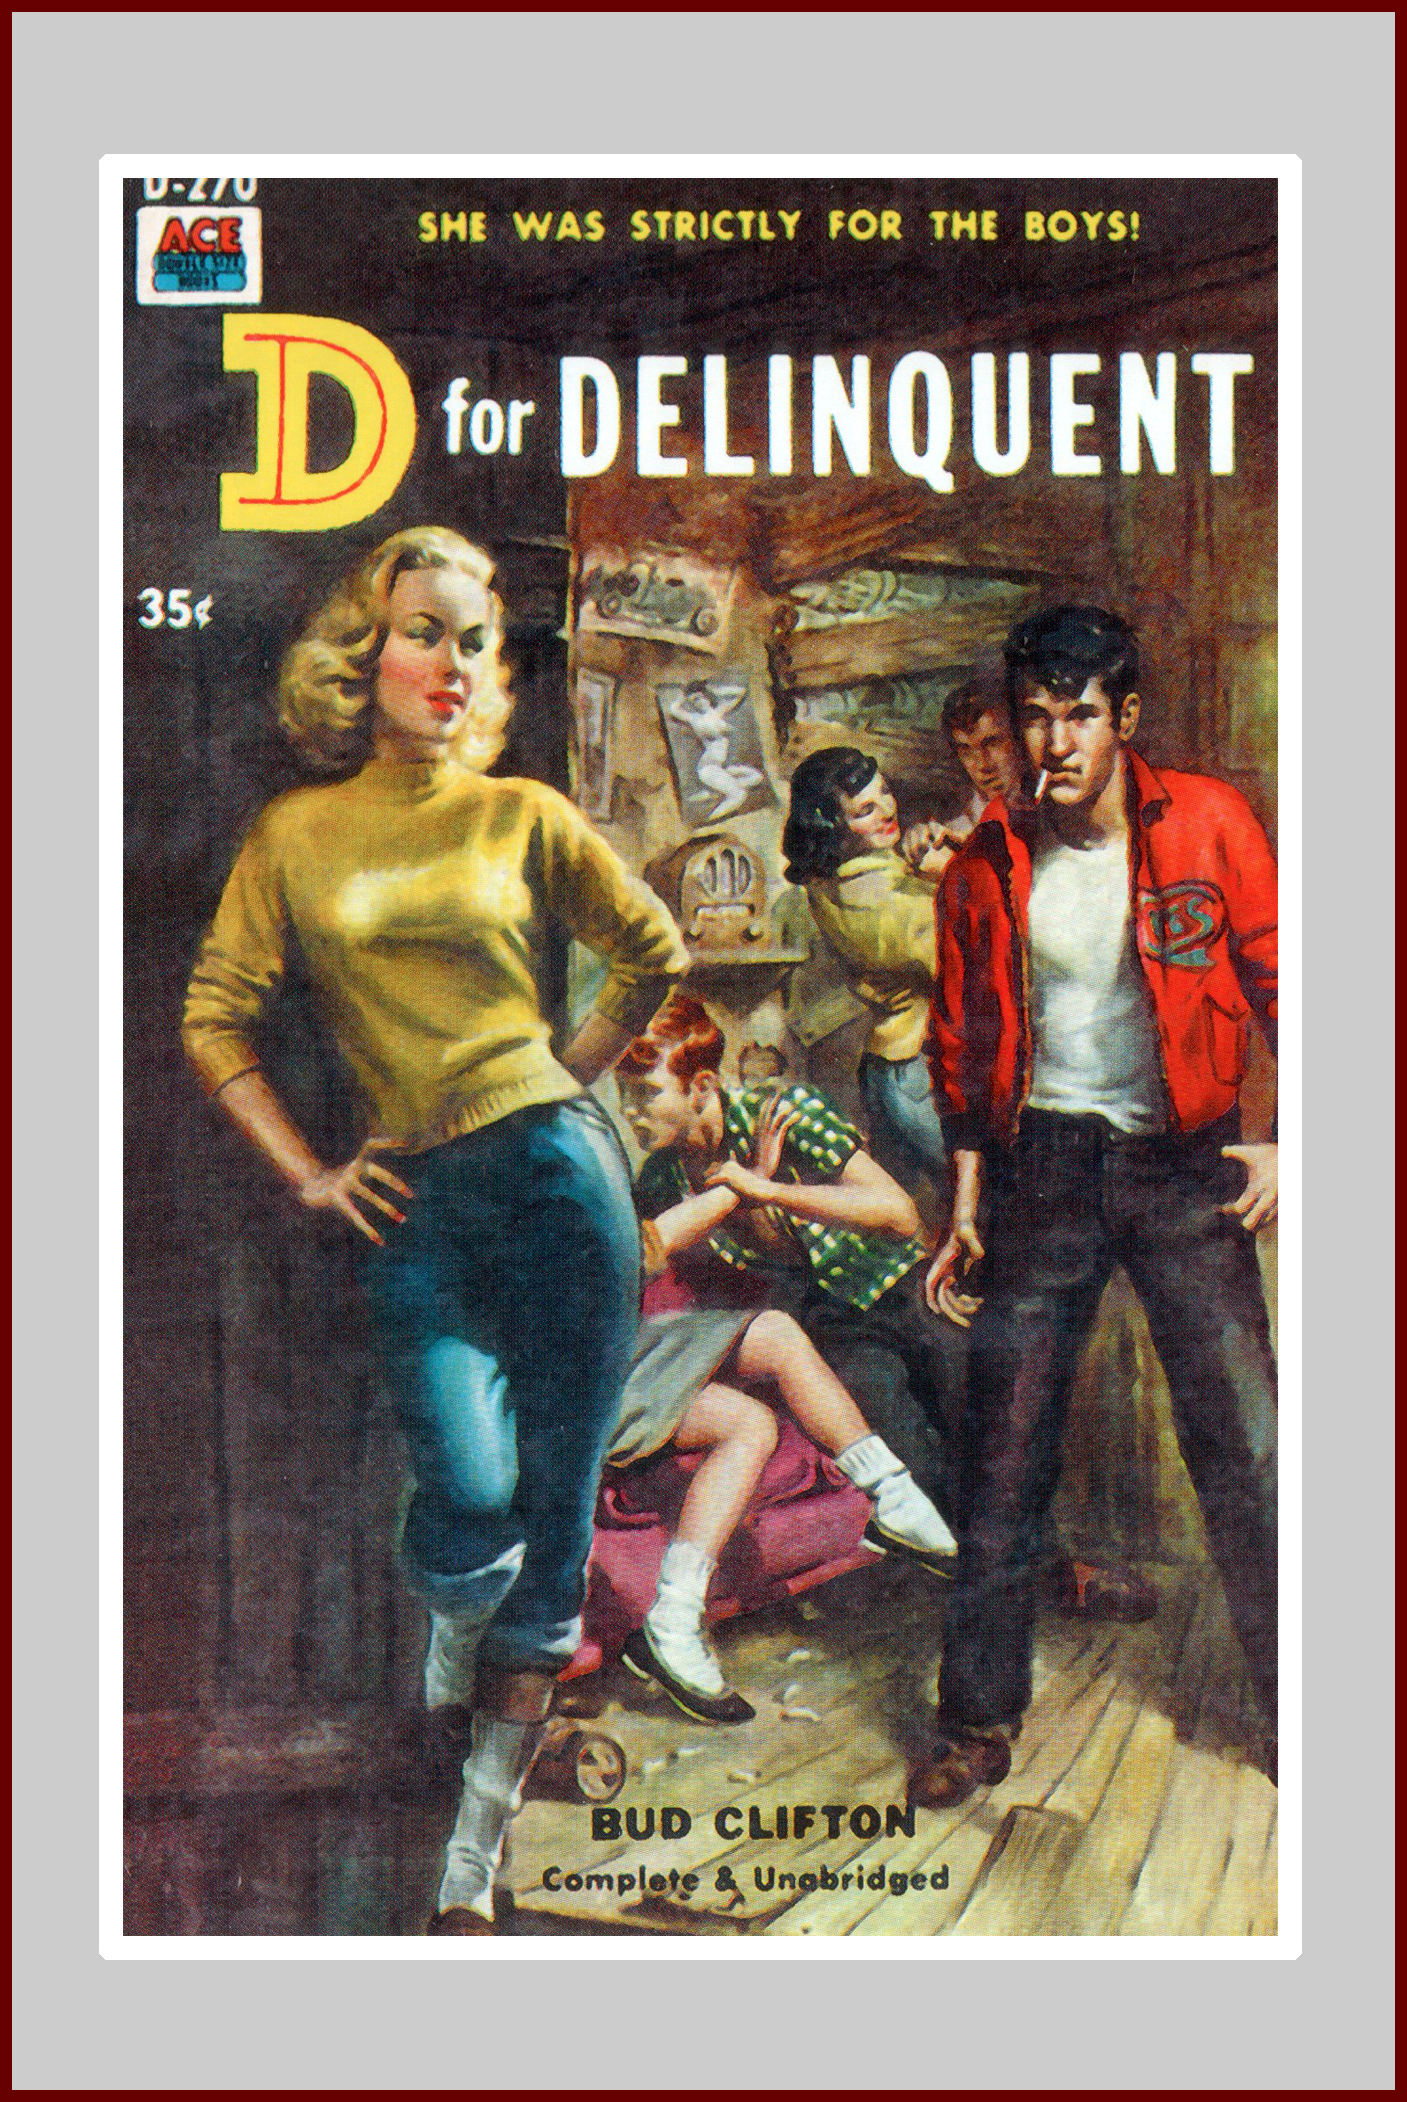 D for Delinquent, pulp novel